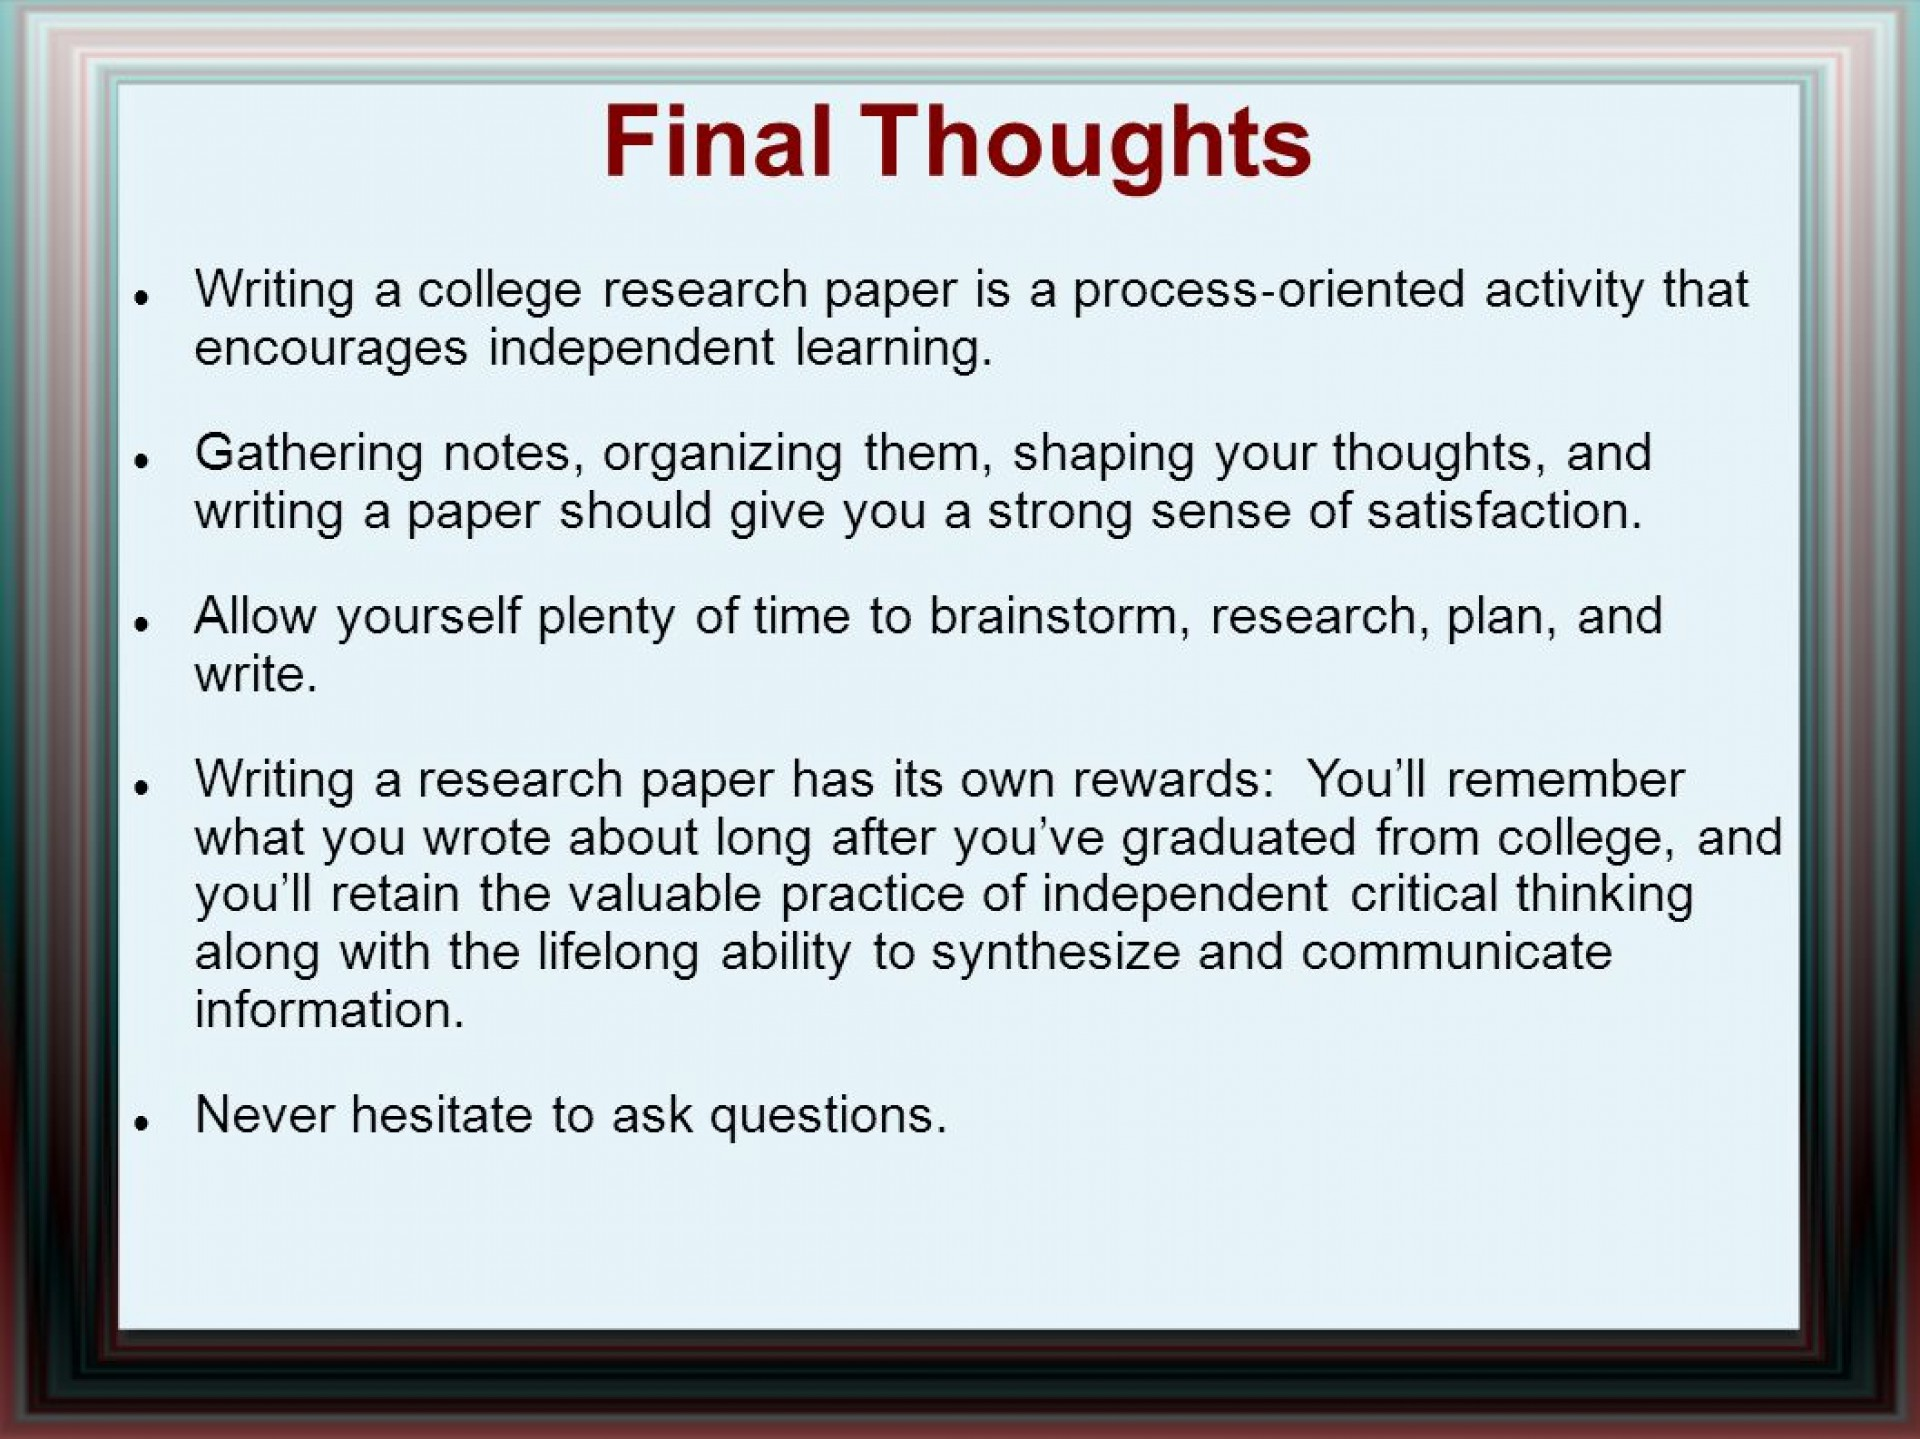 014 Research Paper Writing Process Ppt How Outstanding To Write A Powerpoint Presentation Scientific Make 1920